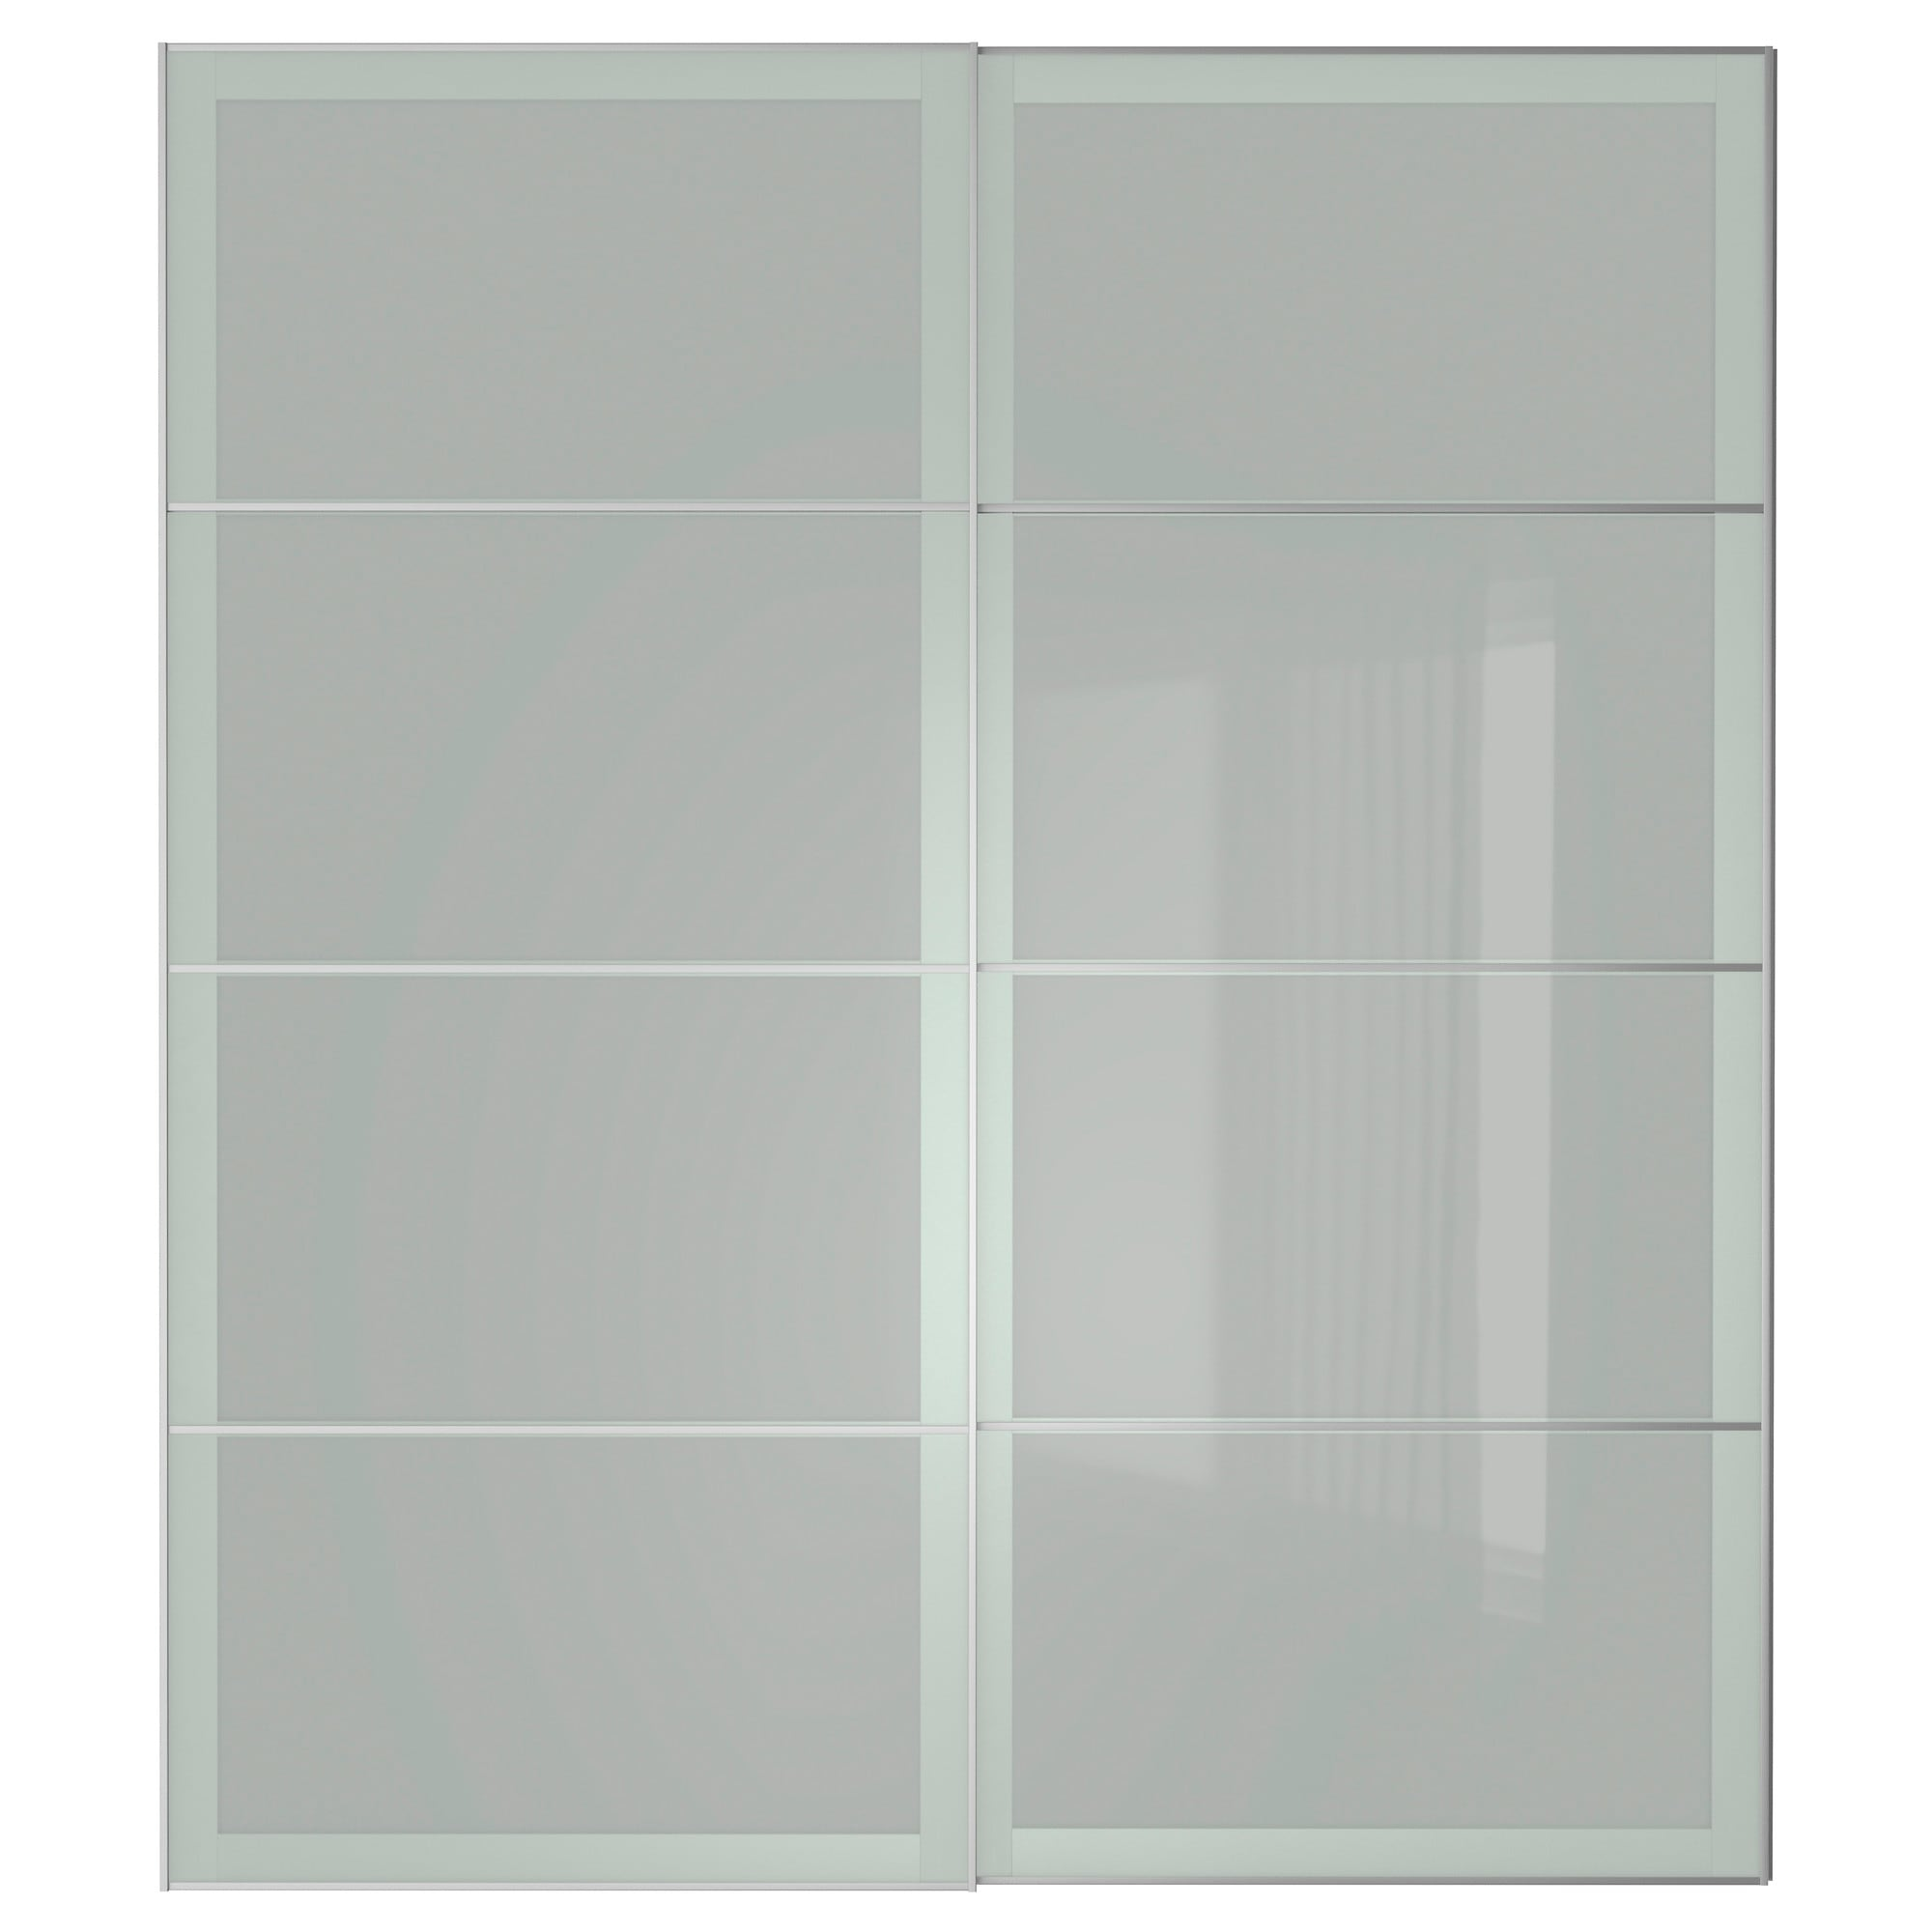 3 panel sliding closet doors - Sekken Pair Of Sliding Doors Frosted Glass Width 78 3 4 Built